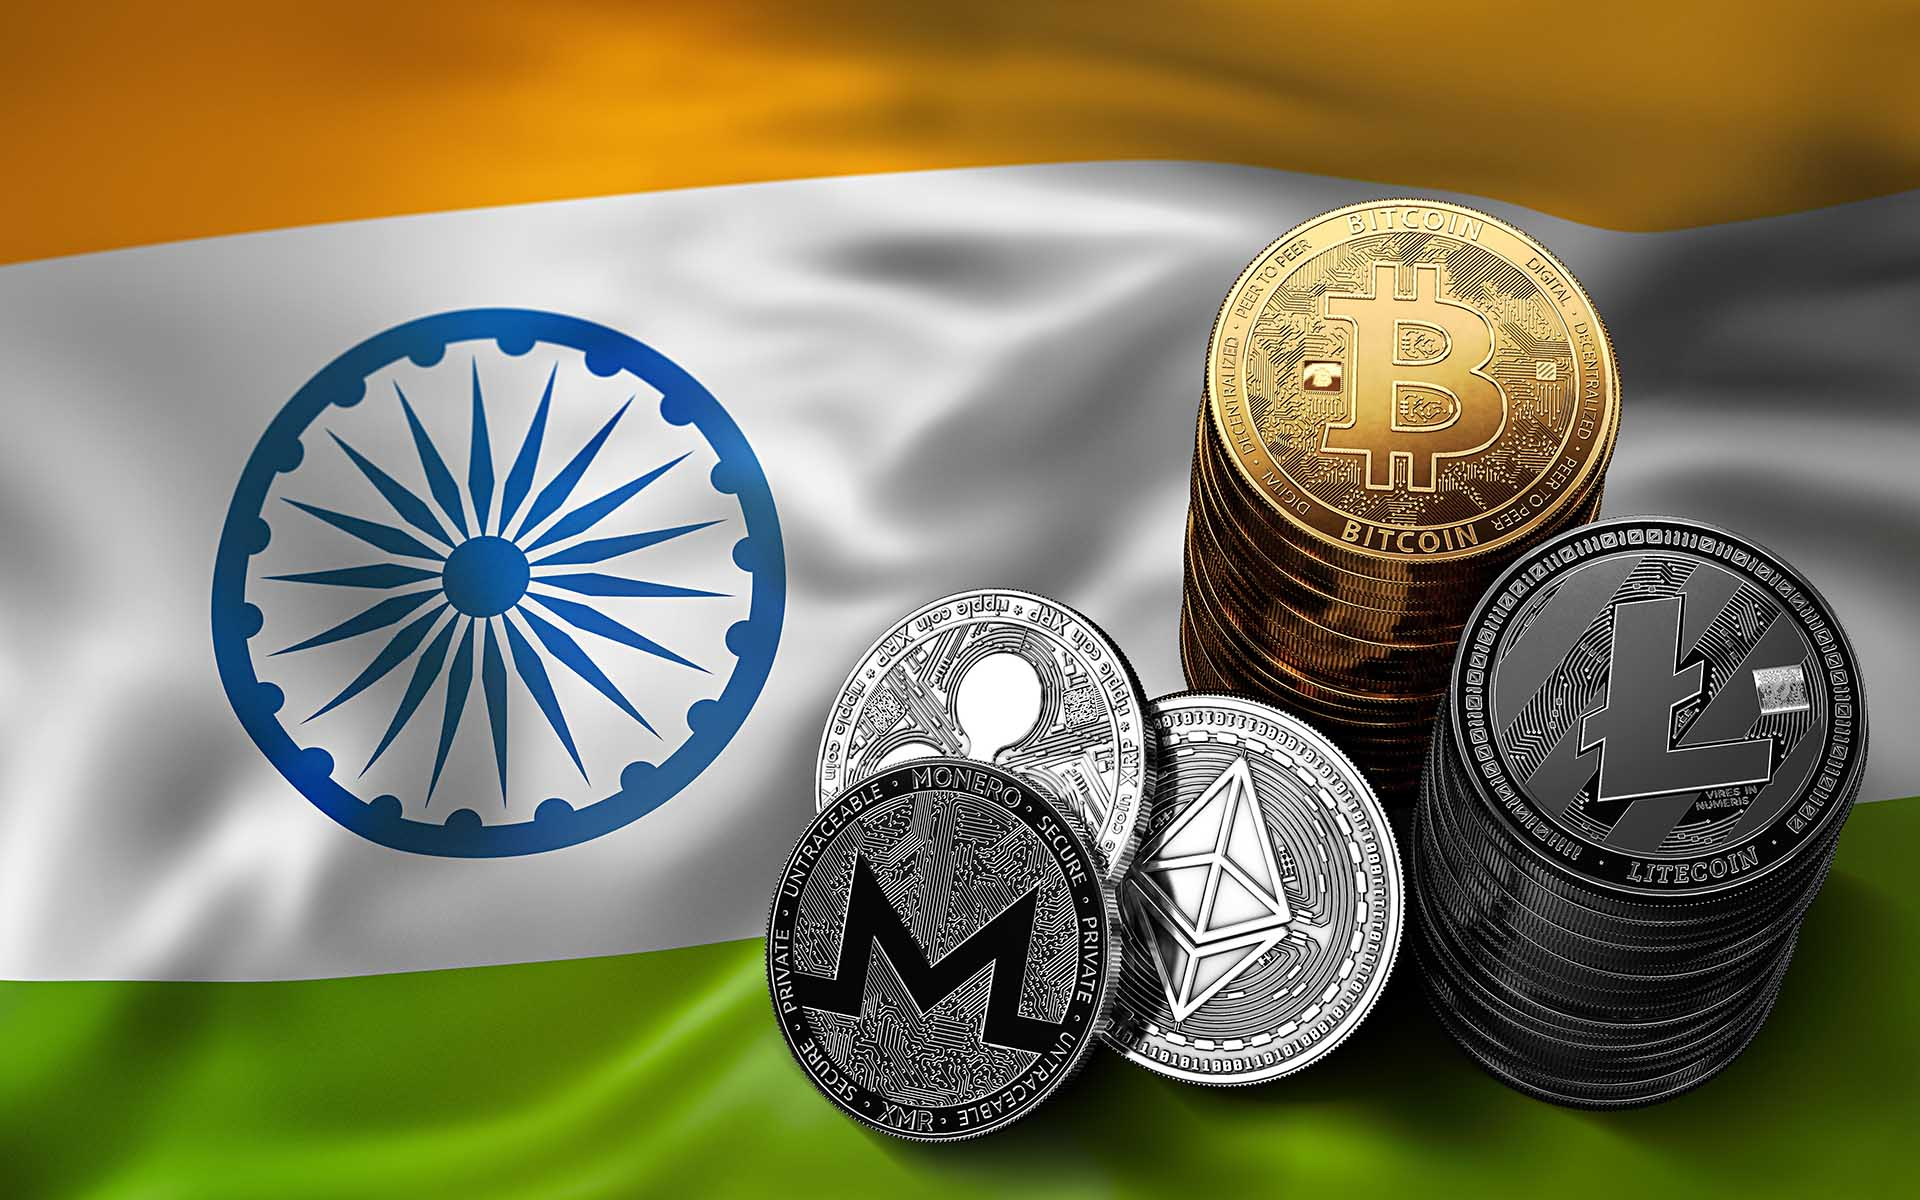 Alleged Suspicious Activities Lead to the Suspension of Top Indian Exchanges